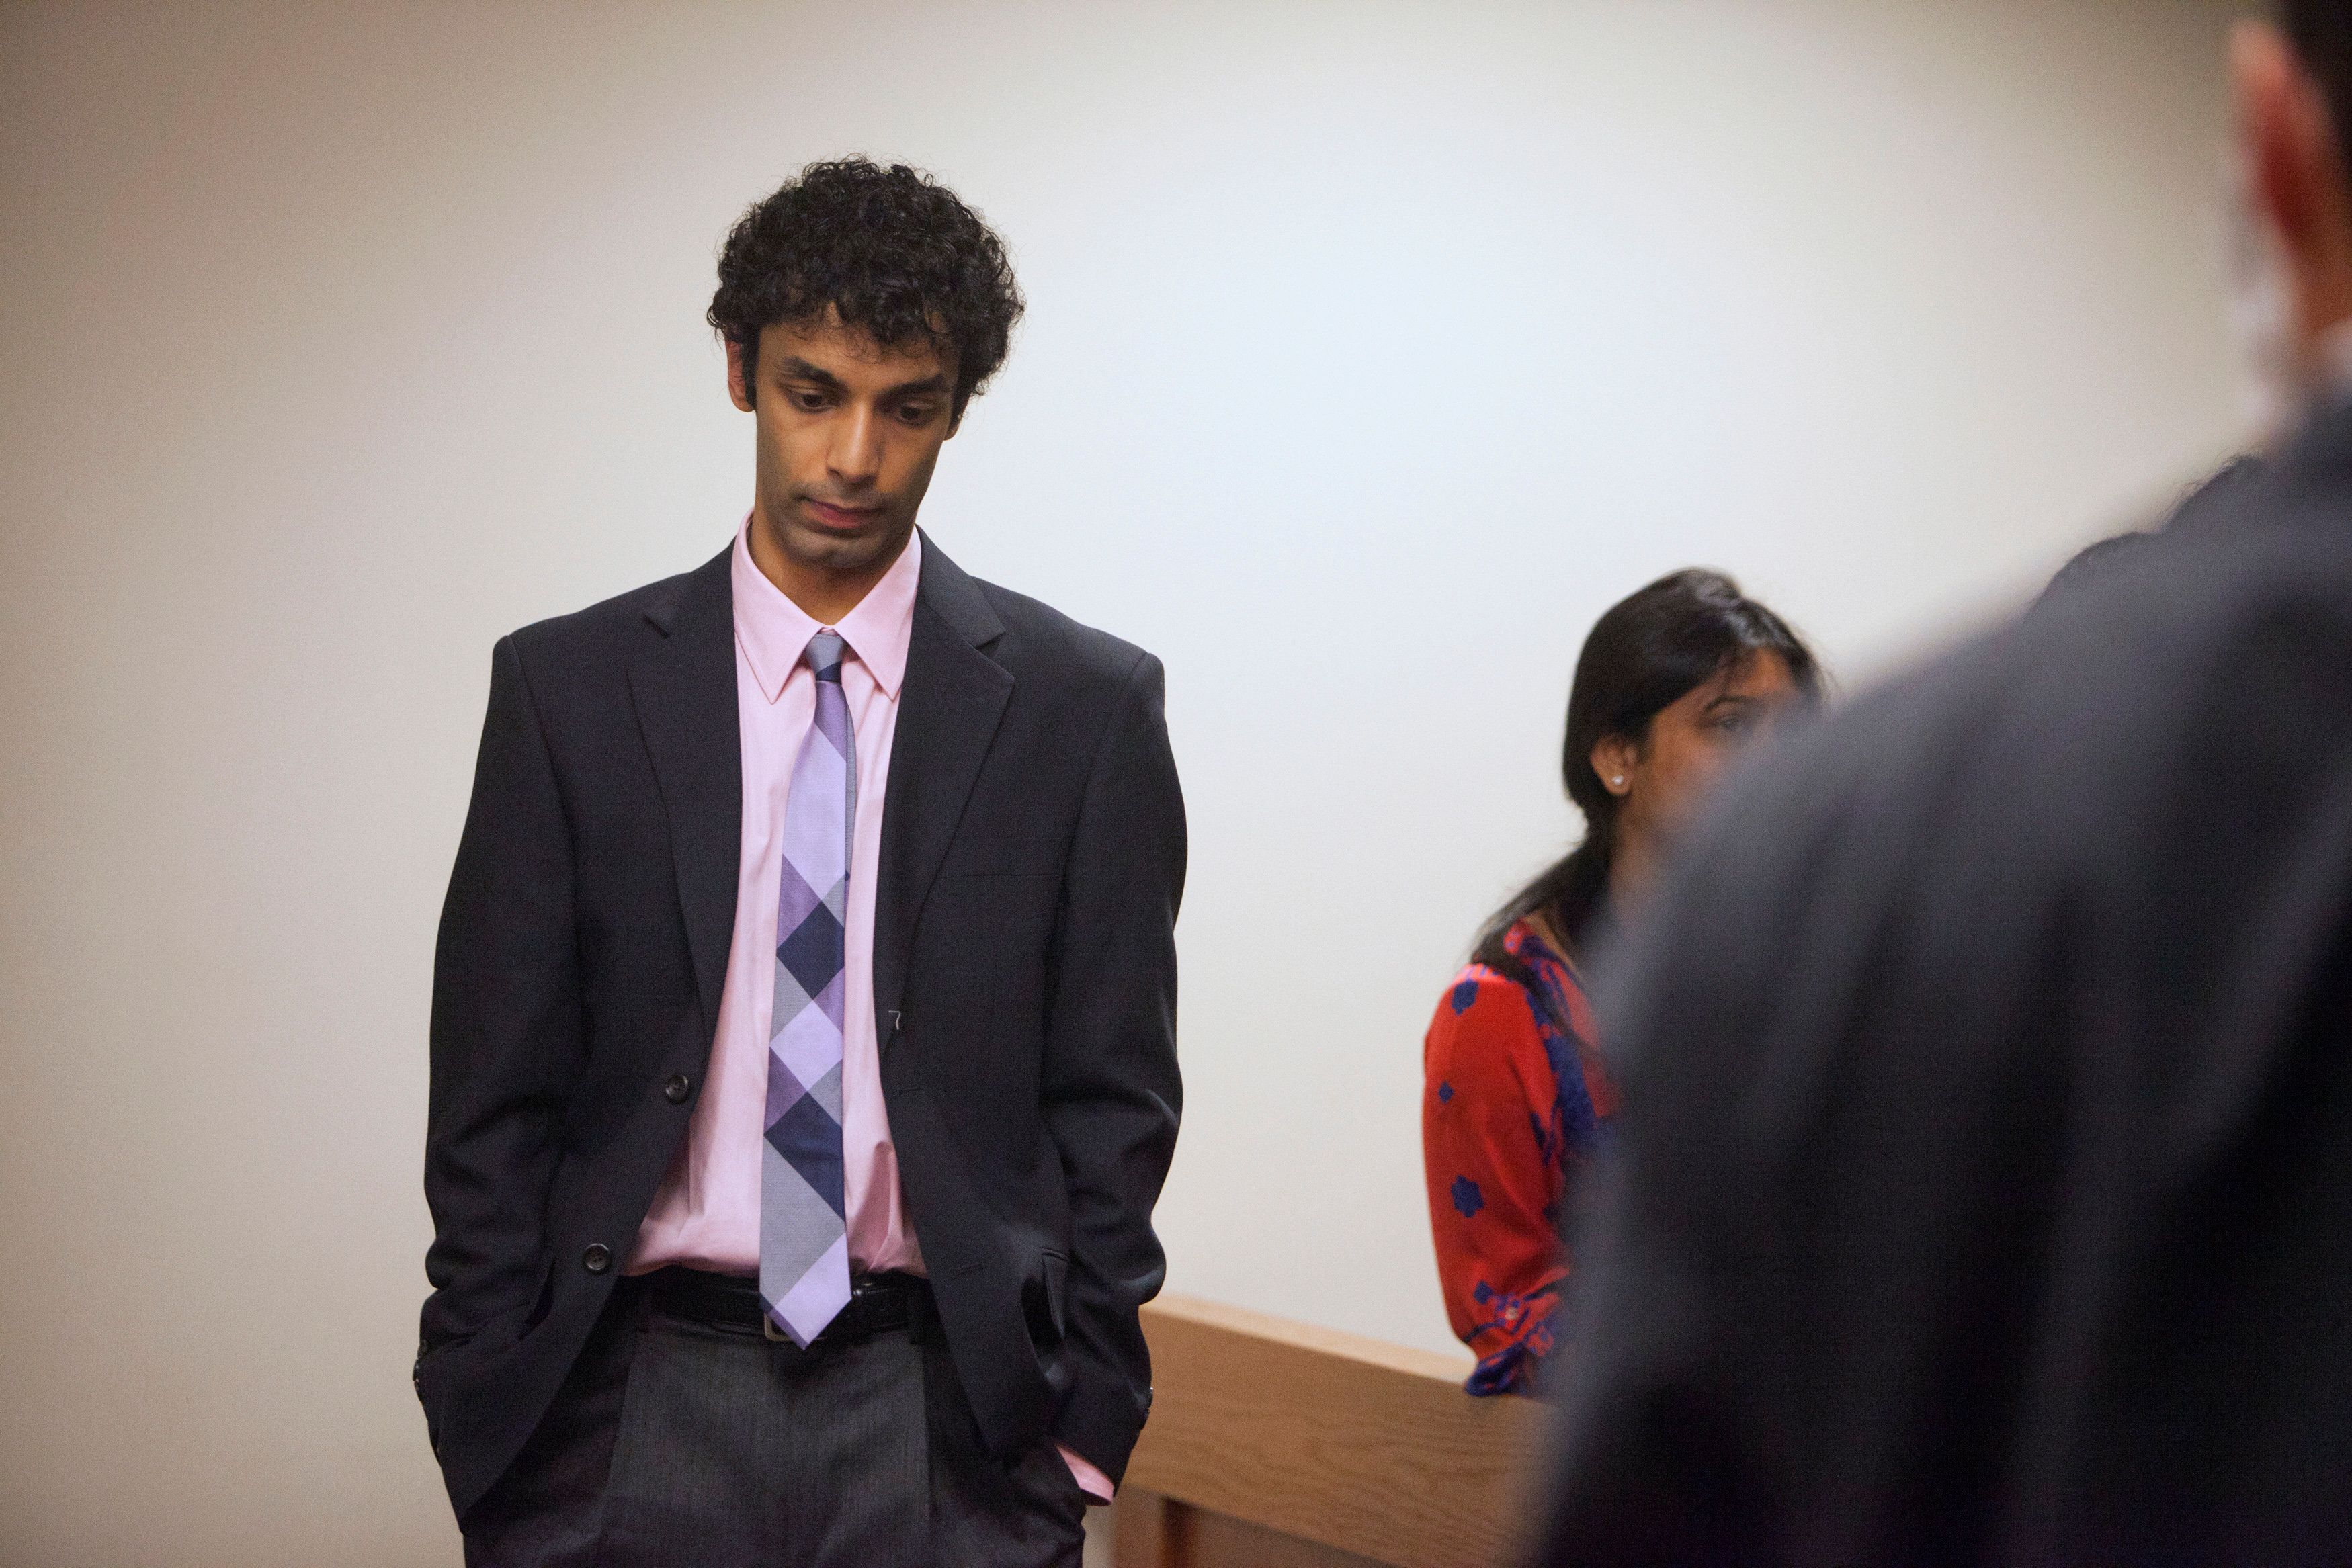 Dharun Ravi stands alone following a sentencing hearing for his conviction in using a webcam to invade the privacy of his roommate, Tyler Clementi, and another man in their college dorm room, in New Brunswick, New Jersey May 21, 2012. The former Rutgers University student was sentenced to 30 days in prison for bias crimes after he spied on his roommate's gay encounter in a case that drew national attention to bullying. REUTERS/Lee Celano (UNITED STATES - Tags: CRIME LAW)